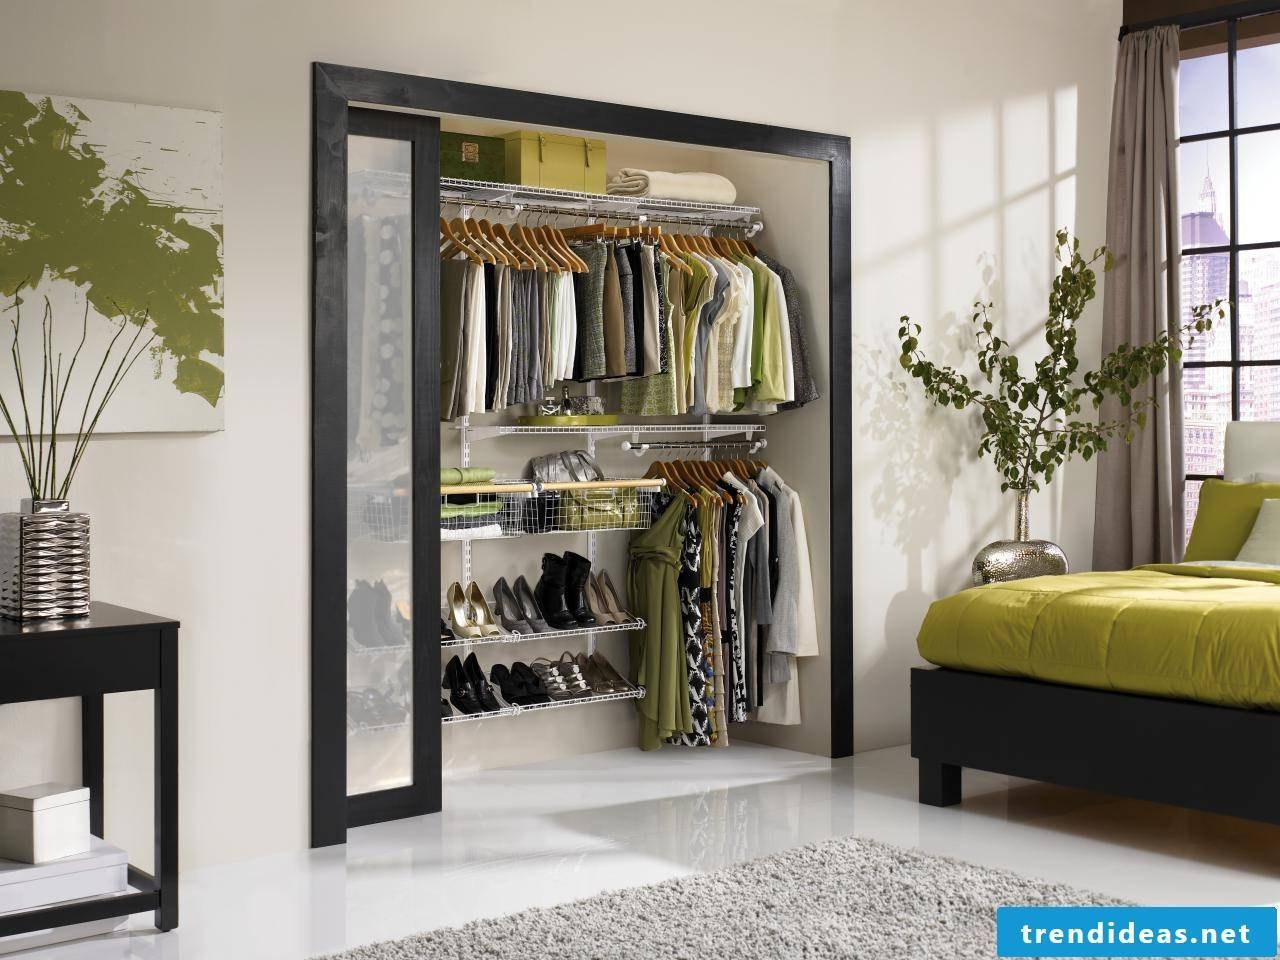 Shelving systems for wardrobes ensure your best comfort!